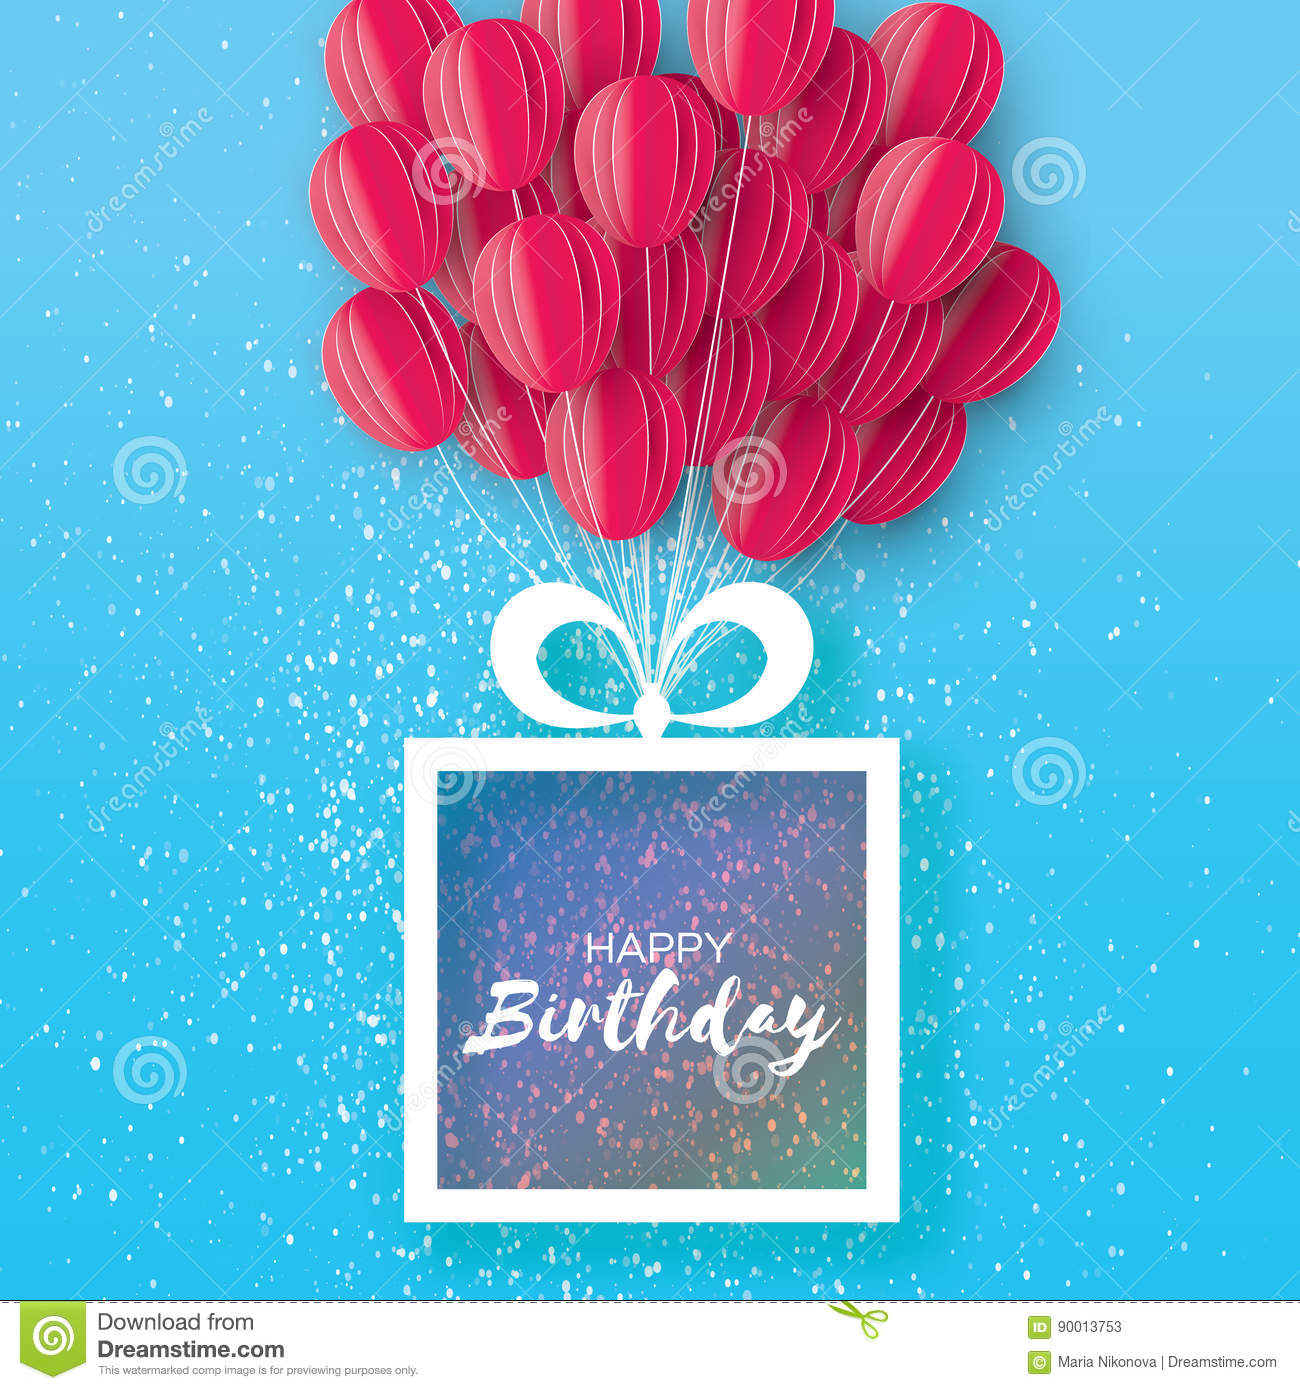 Happy Birthday Greeting Card Origami Gift Box Space